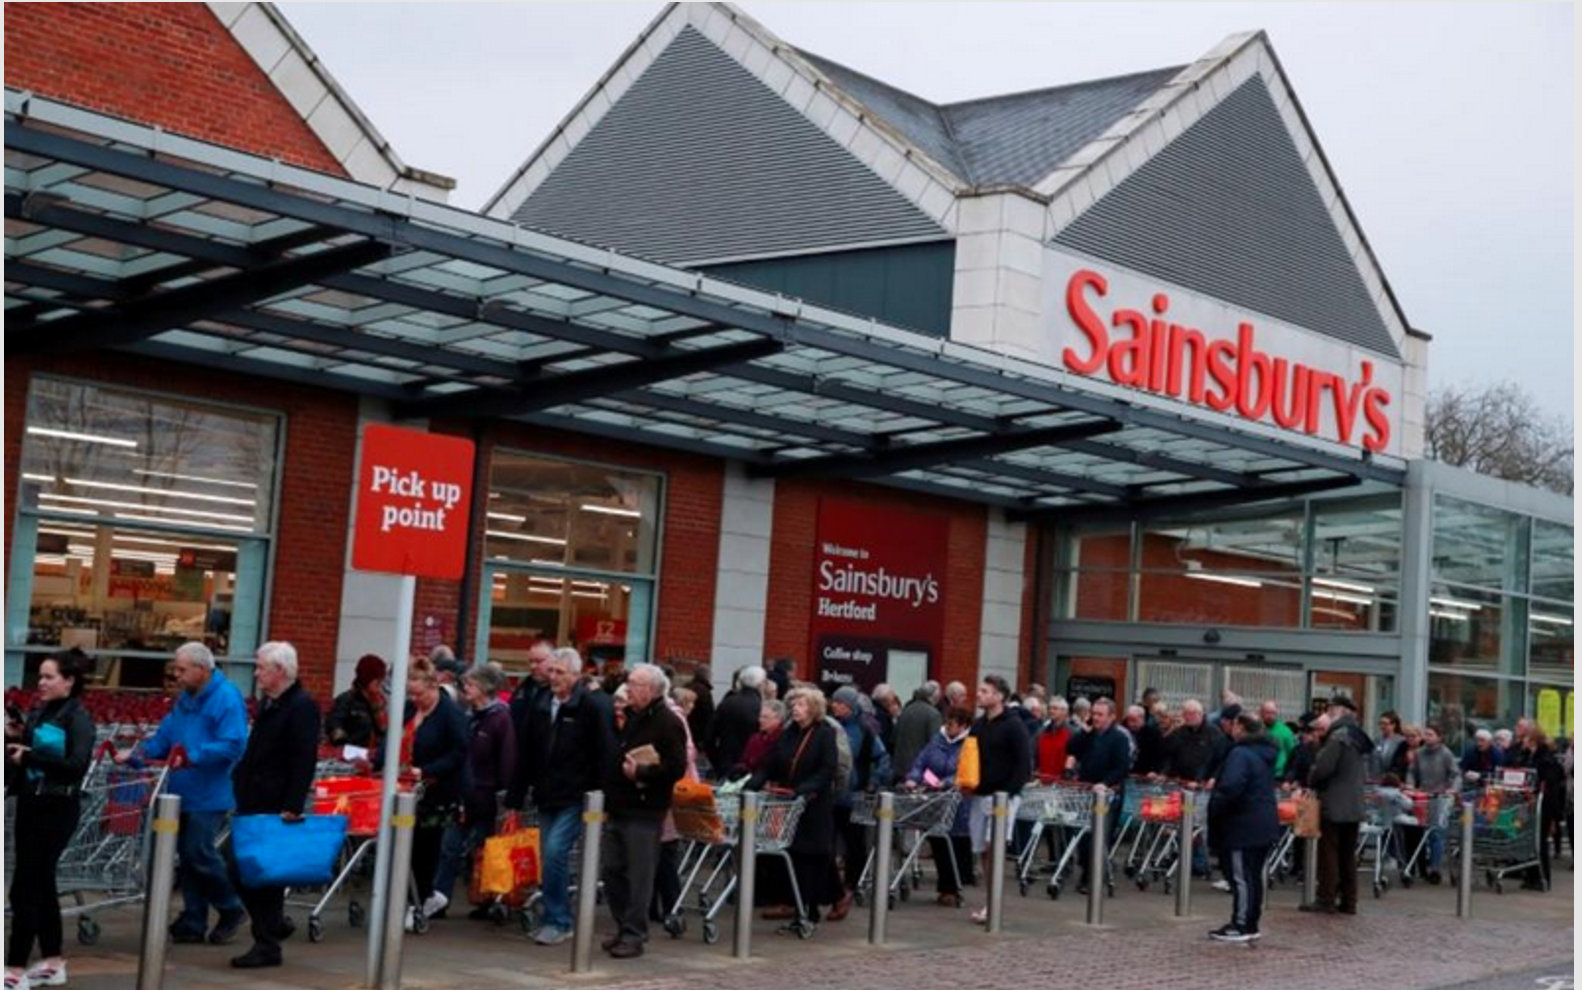 Above: A social distanced queue at a Sainsbury's store when priority was given to the elderly.